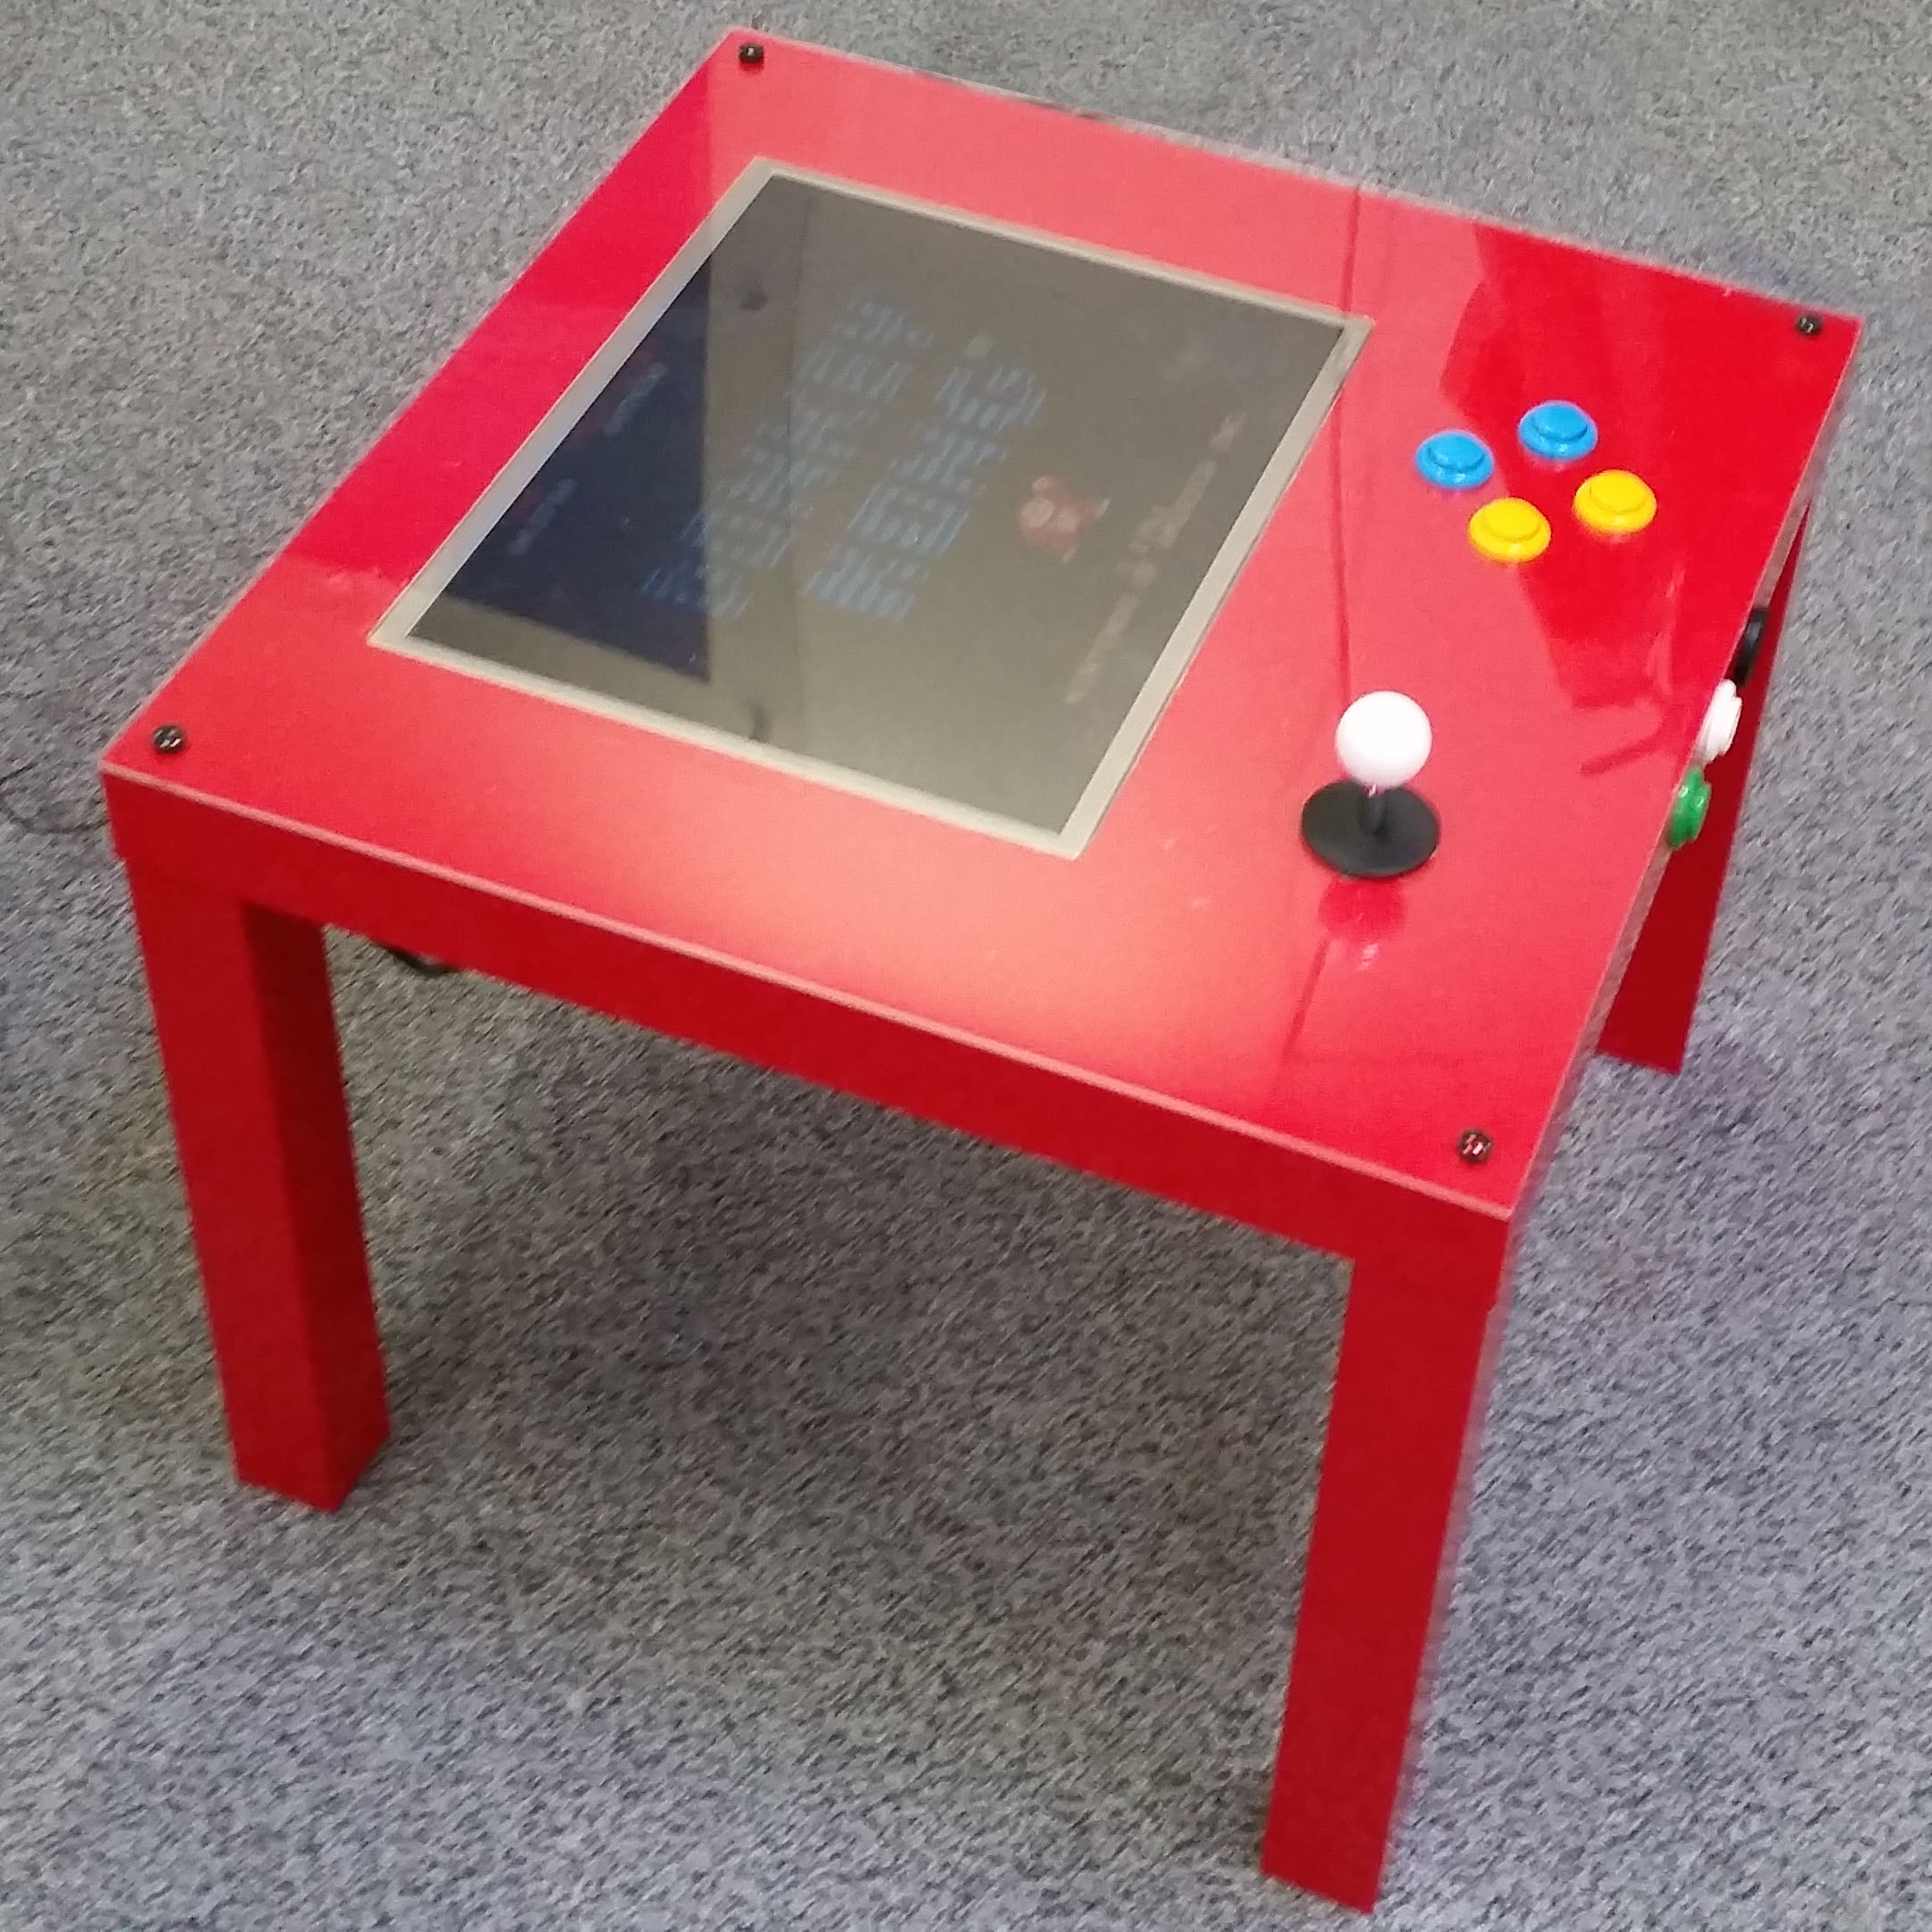 A Raspberry Pi IKEA arcade table to make yourself Raspberry Pi